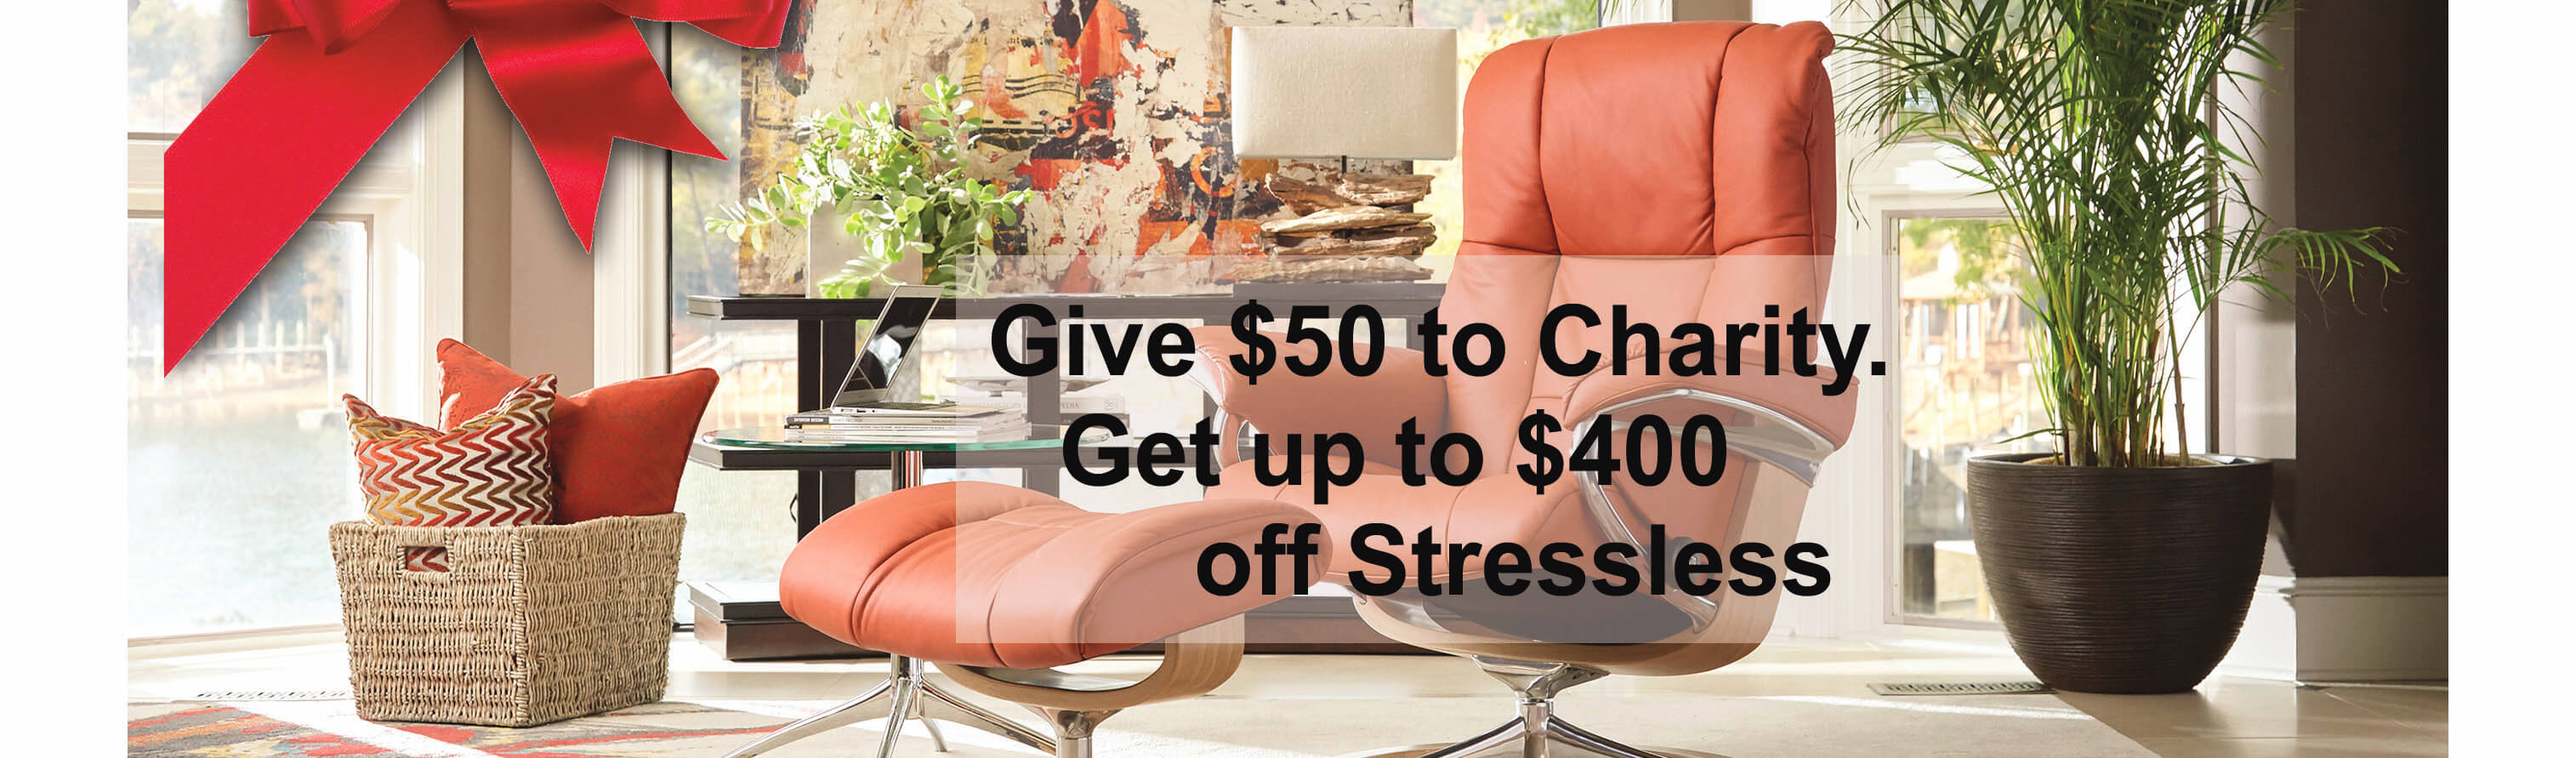 Stressless Charity Promotion 2019